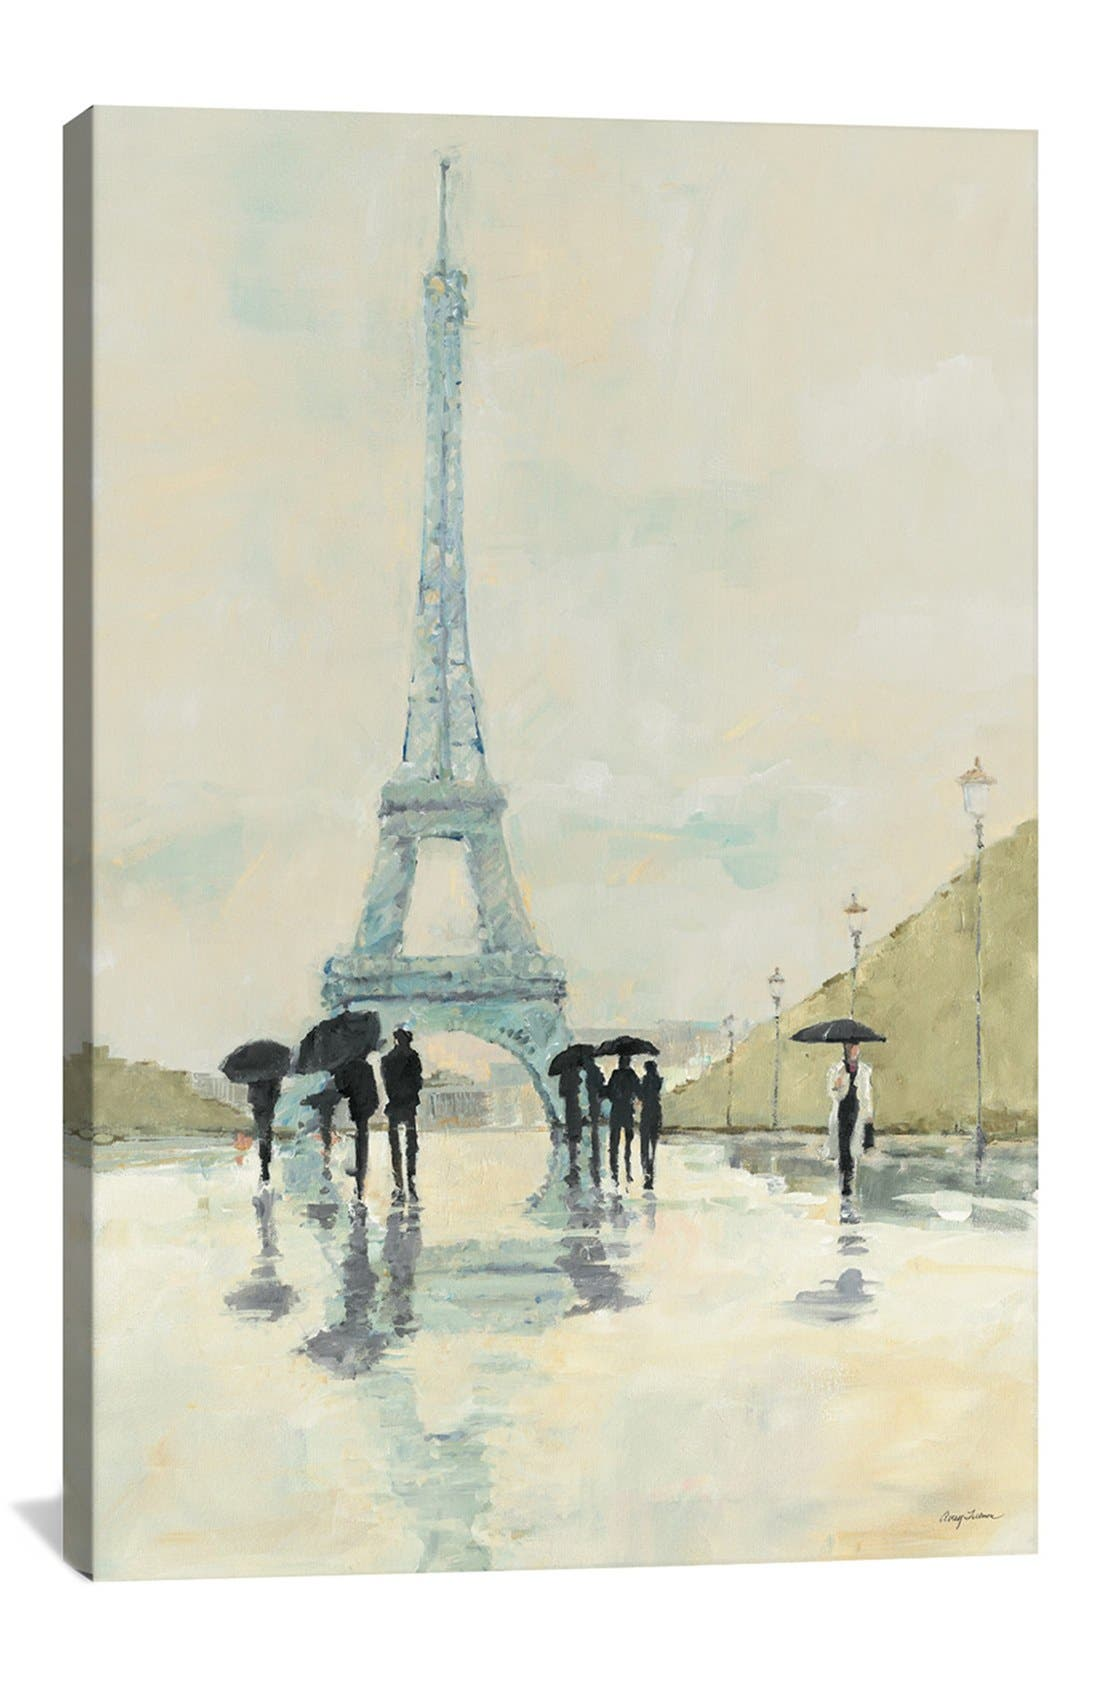 Alternate Image 1 Selected - iCanvas 'April in Paris - Avery Tillmon' Giclée Print Canvas Art